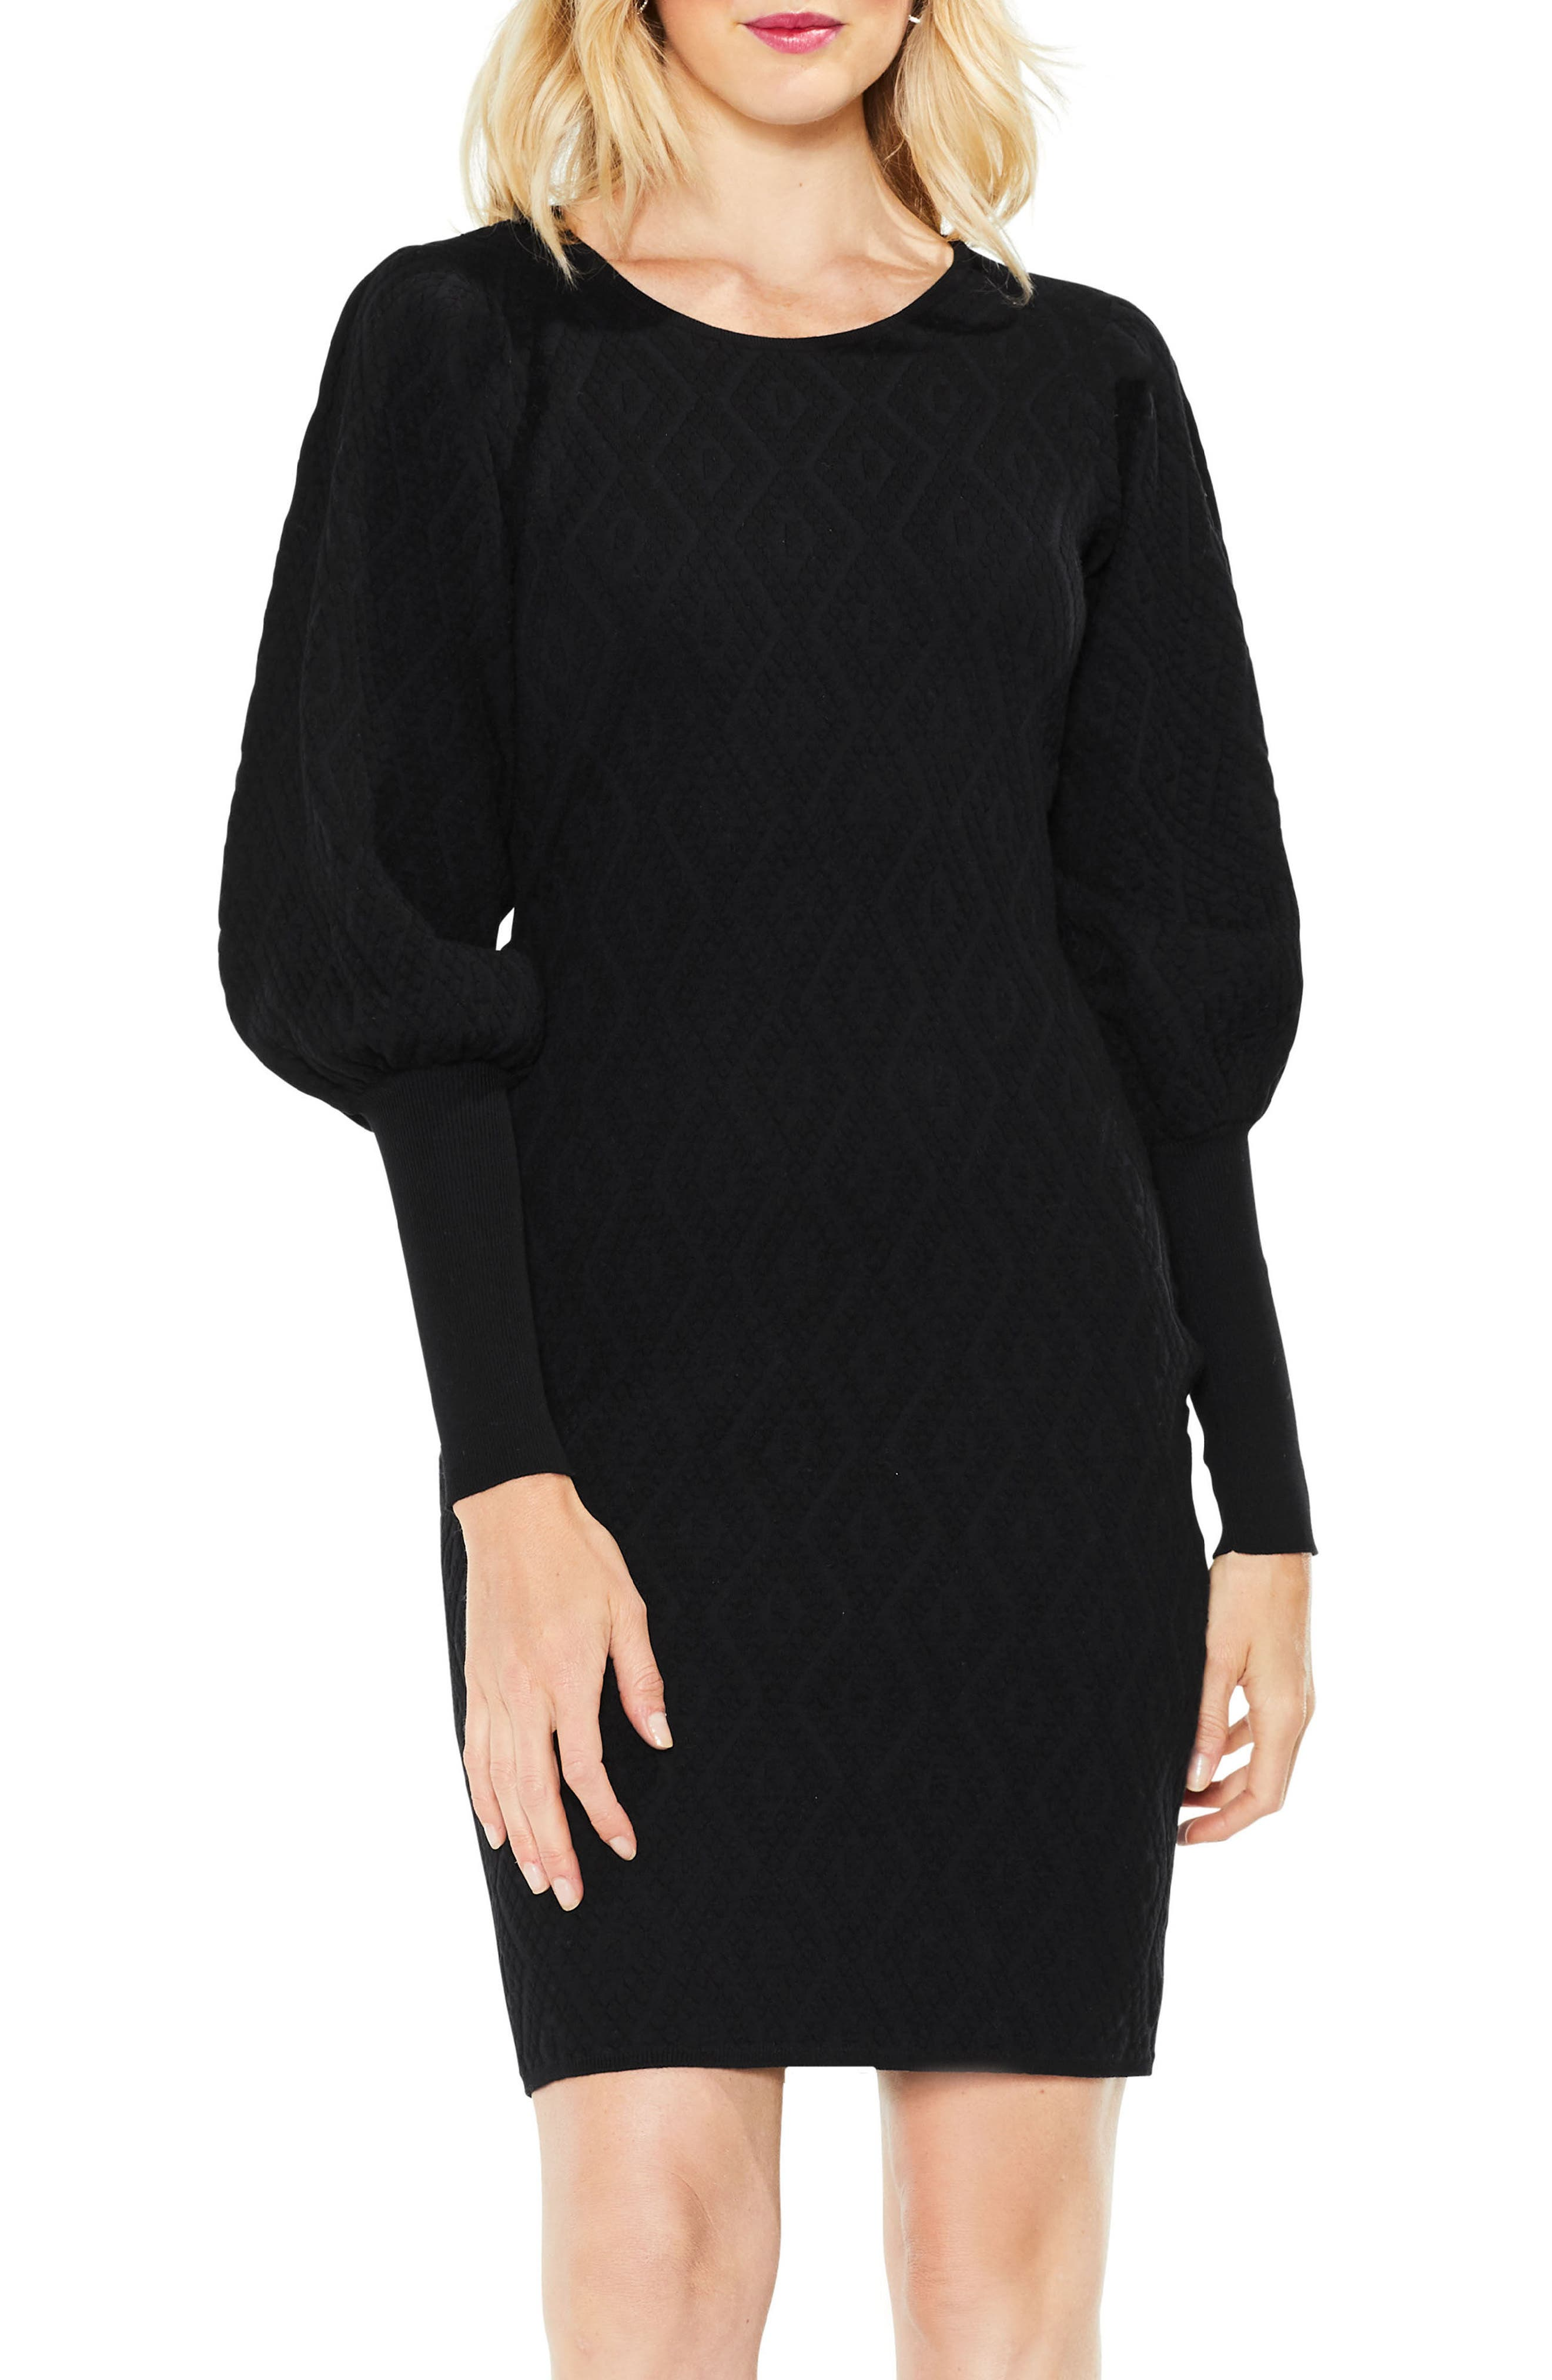 Vince Camuto Bubble Sleeve Textured Jacquard Dress